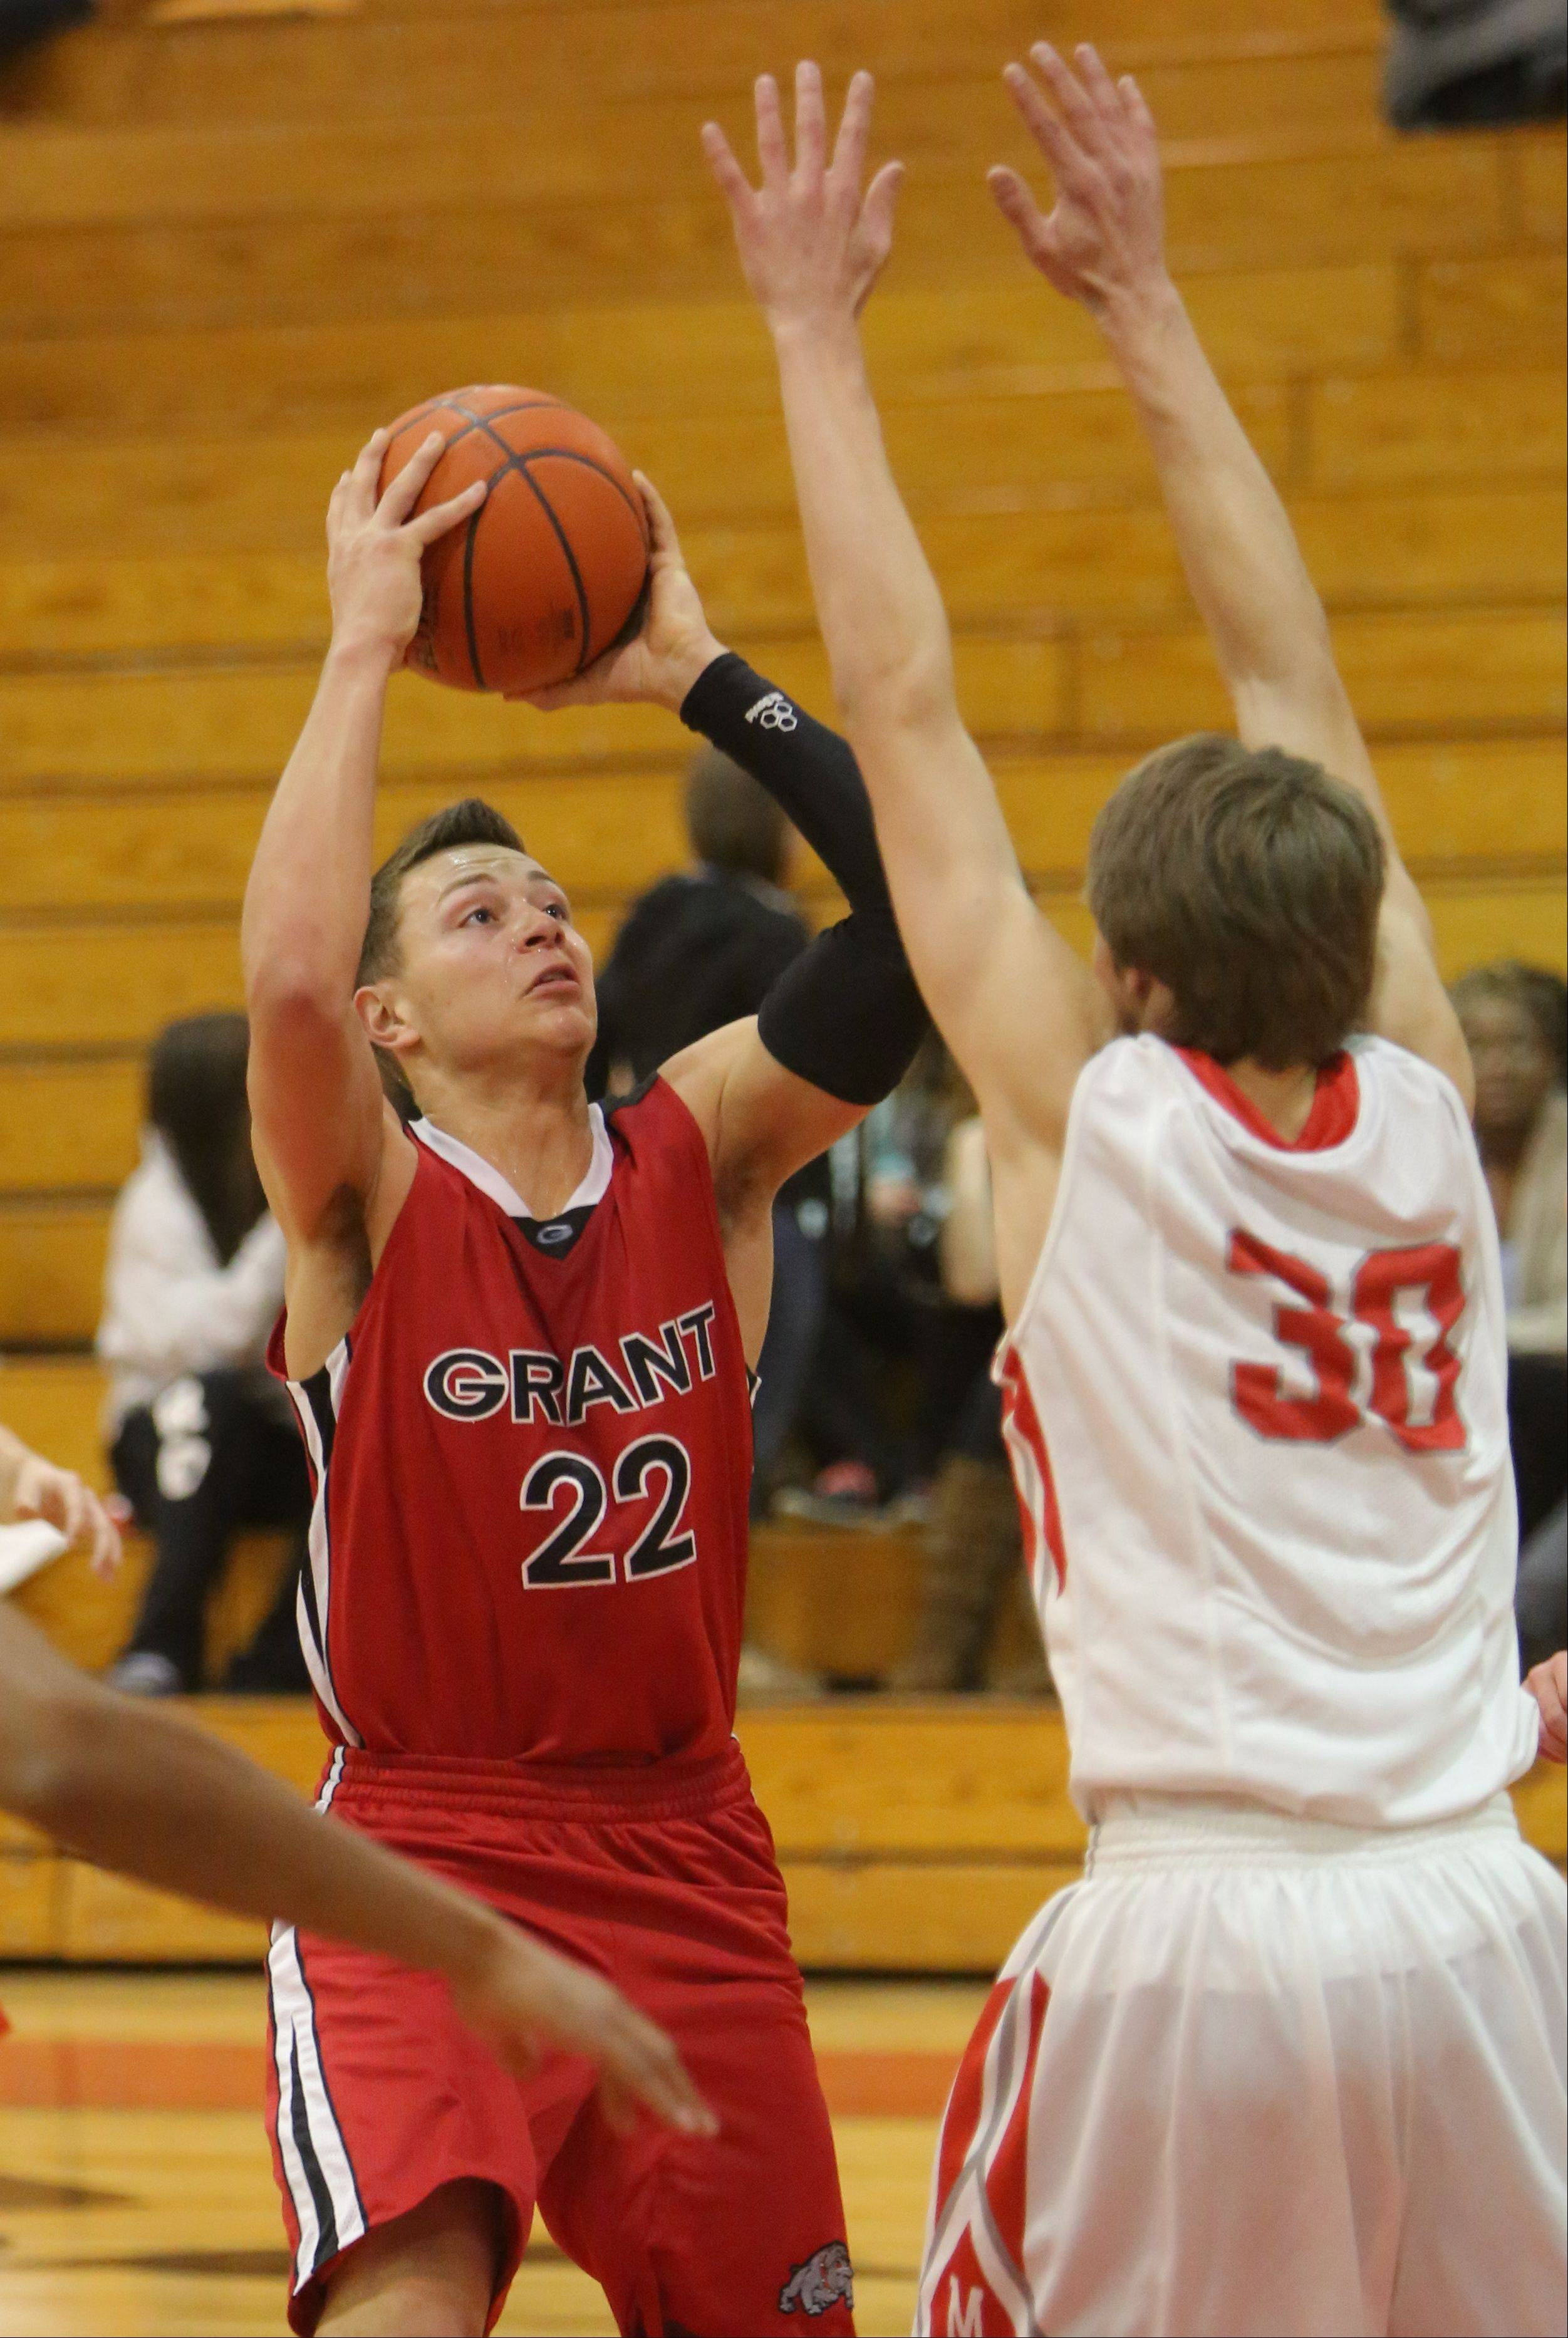 Images from the Grant at Mundelein boys basketball game on Tuesday, January 21.